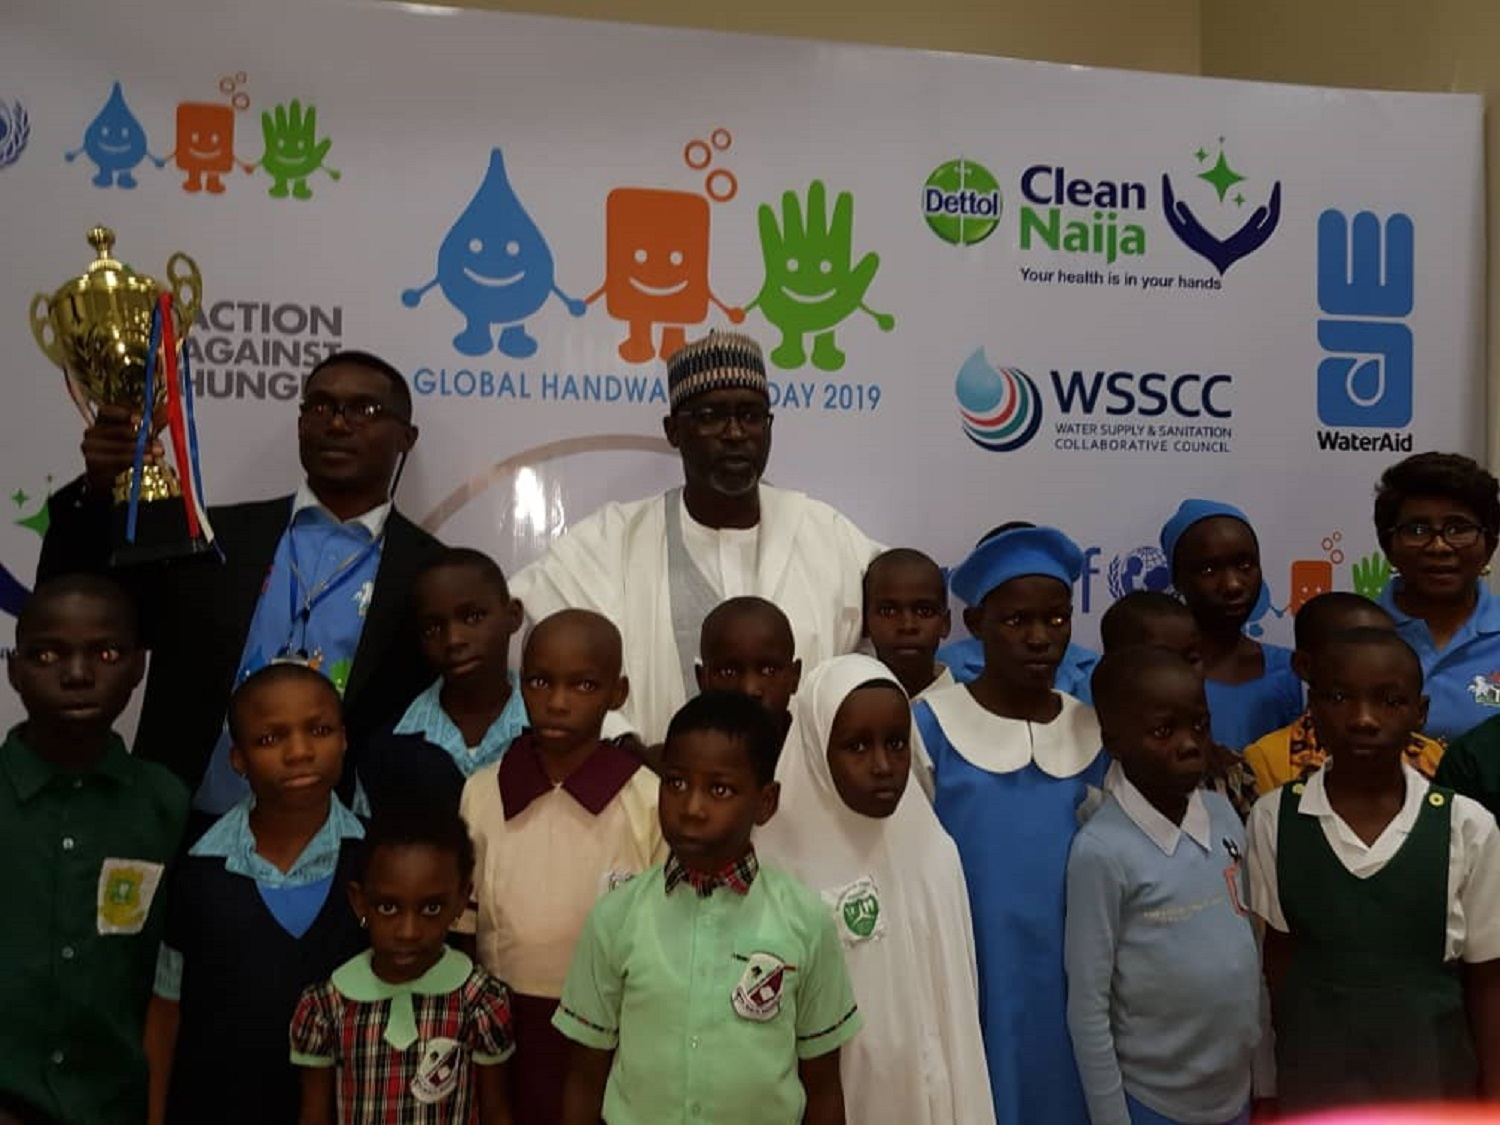 2019 Global Hand Washing Day: Minister engages children on prevention against killer diseases